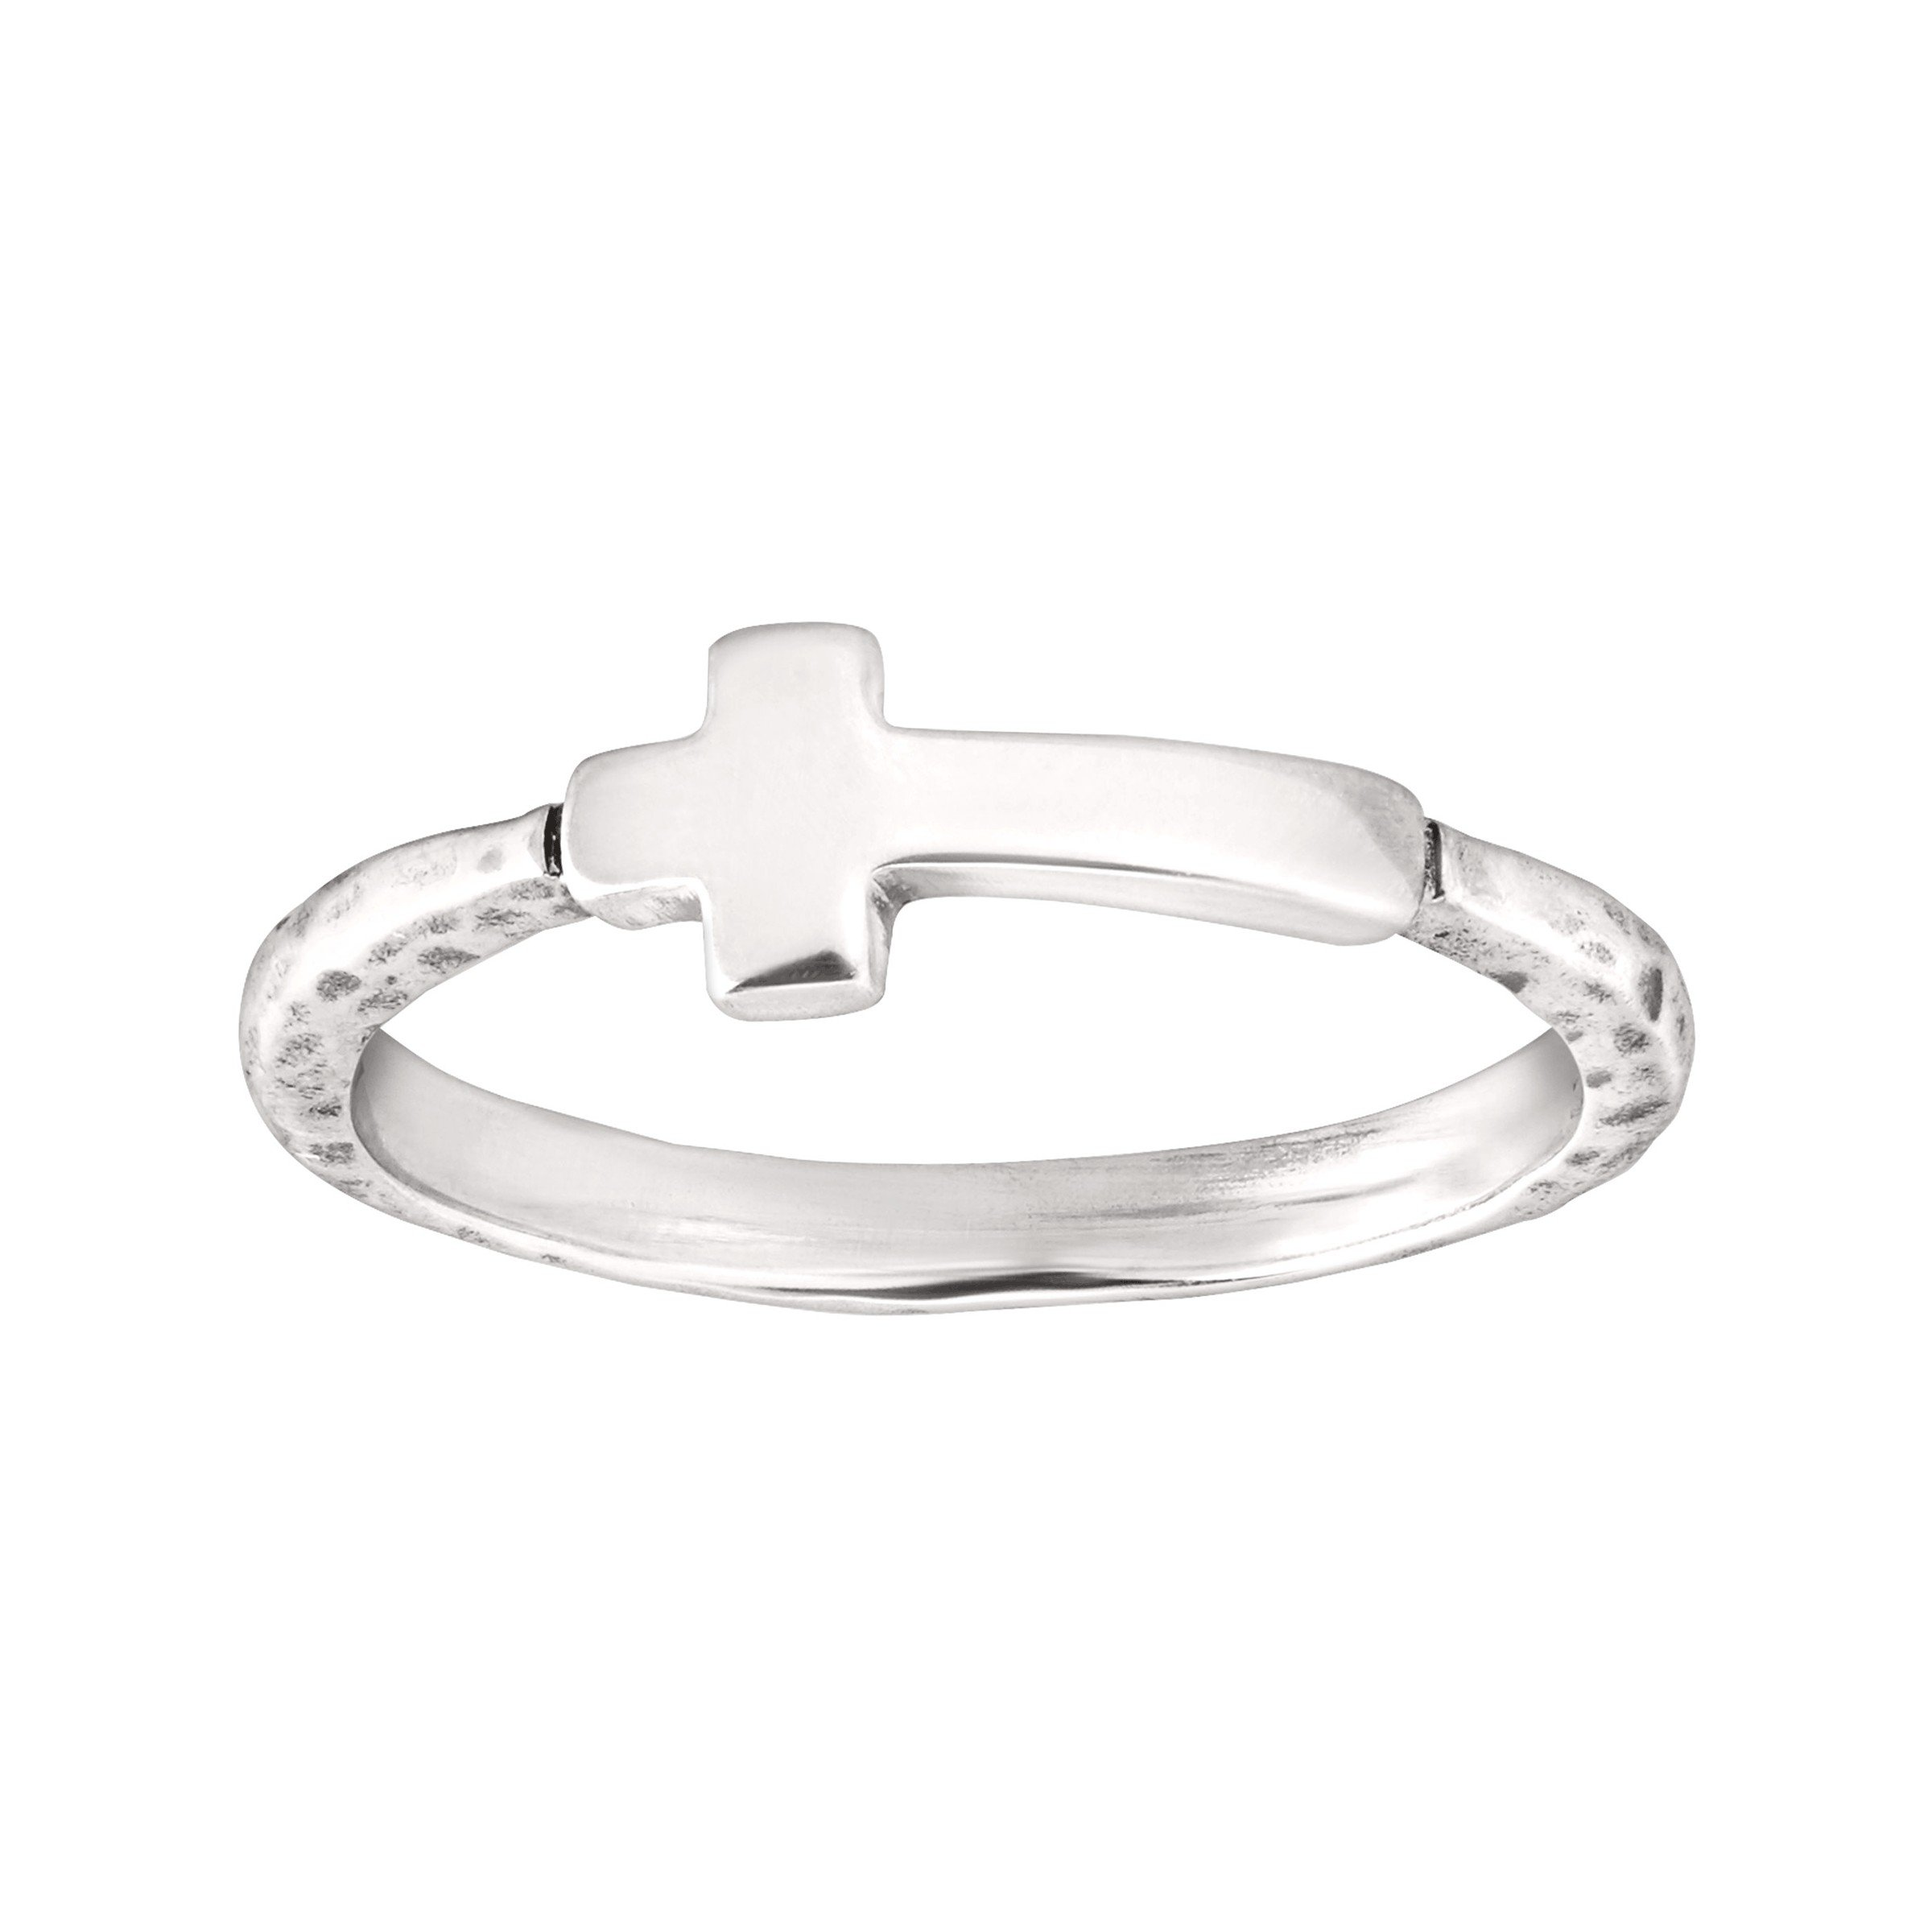 Silpada 'Simplex Cross' Horizontal Cross Textured Ring in Sterling Silver